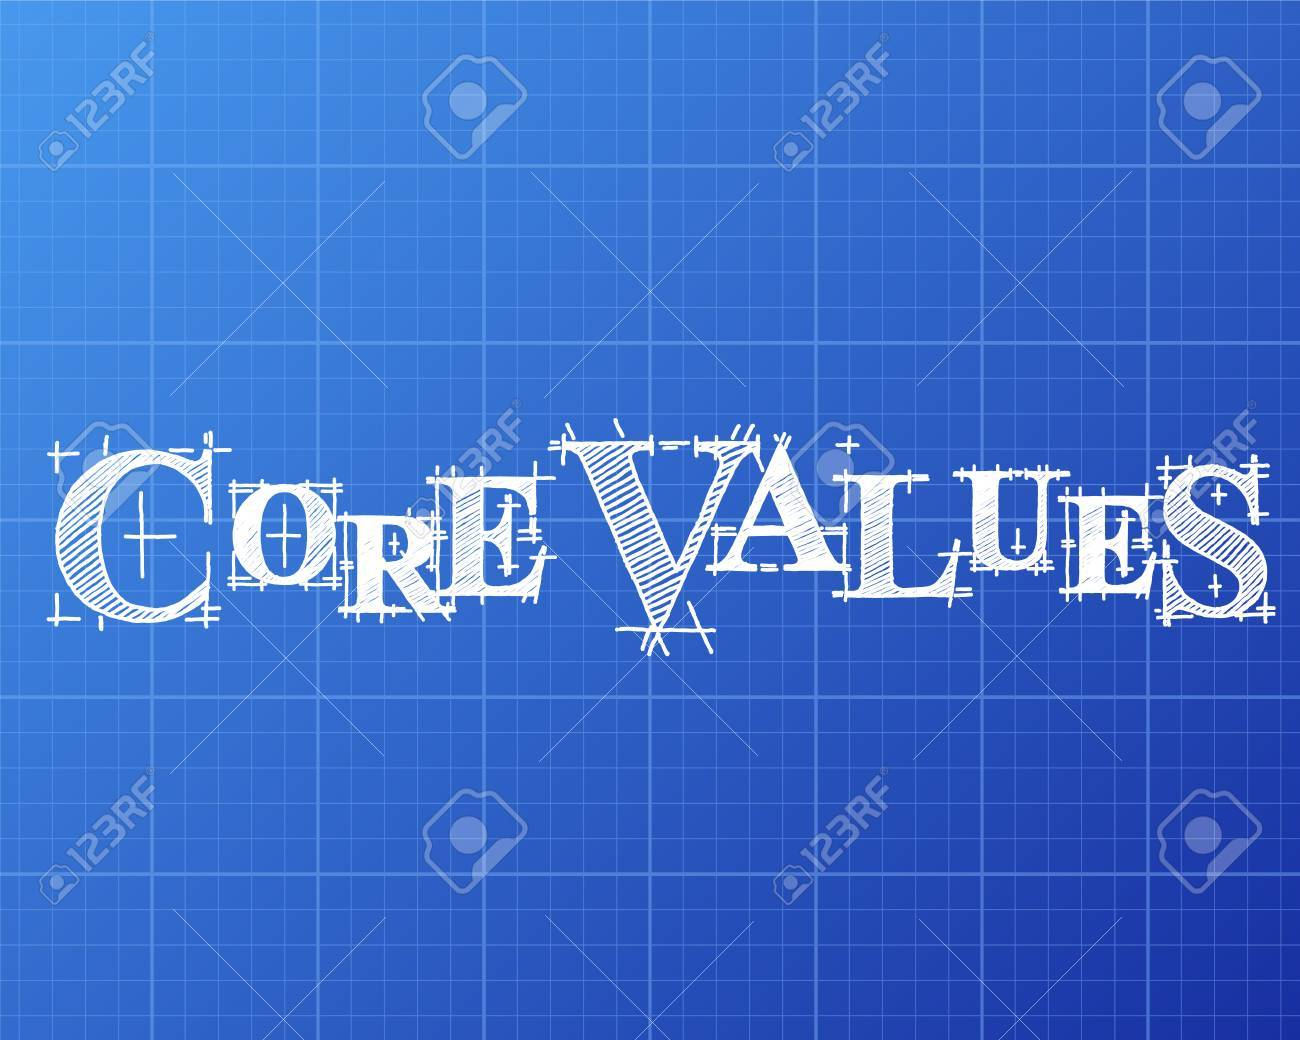 Core values text hand drawn on blueprint background royalty free core values text hand drawn on blueprint background stock vector 77565326 malvernweather Gallery